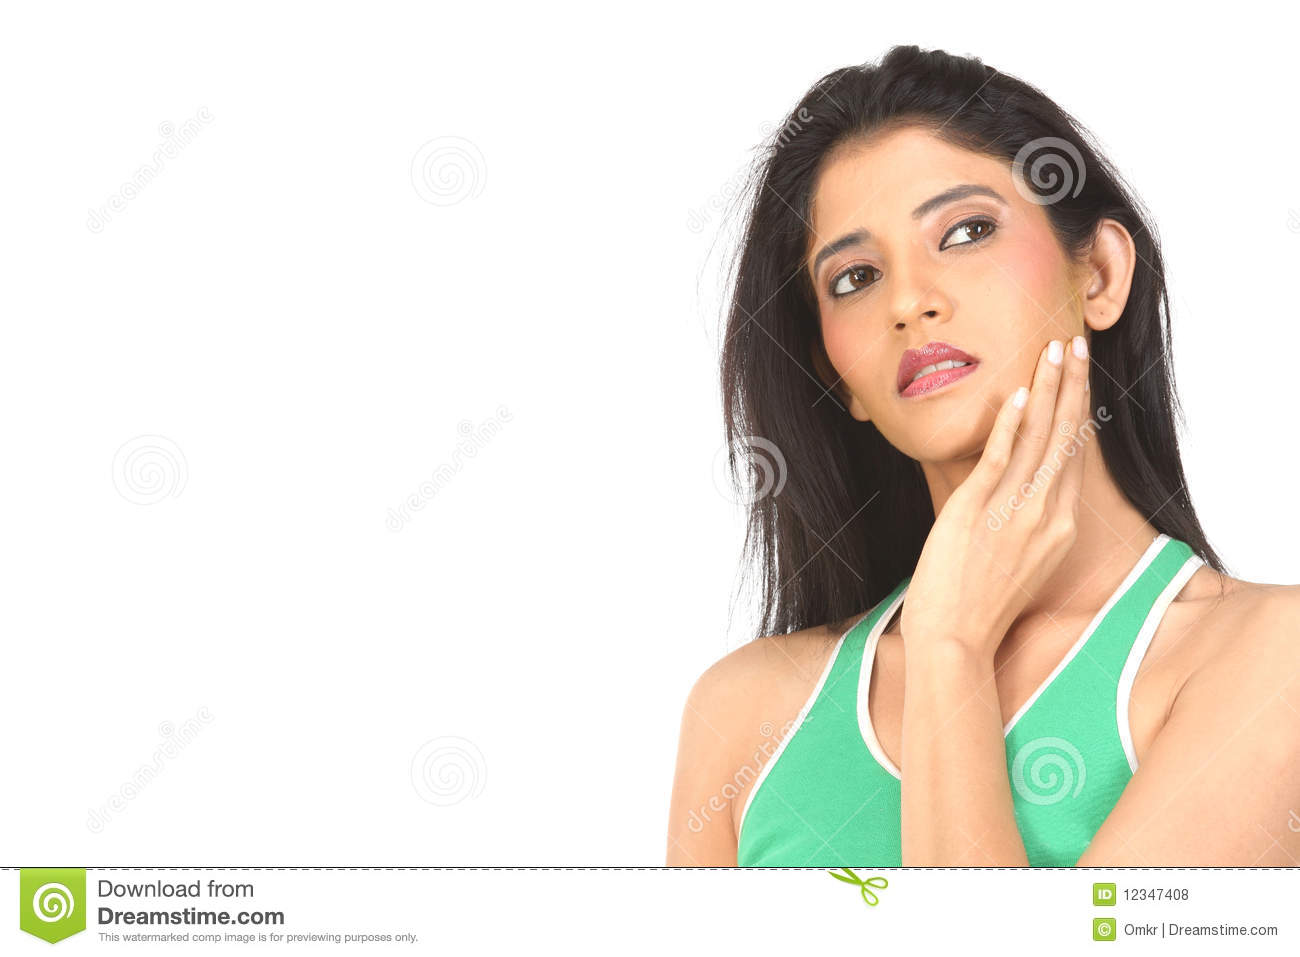 Indan Woman Taking Care of Her Skin Stock Photo   Image of green ...